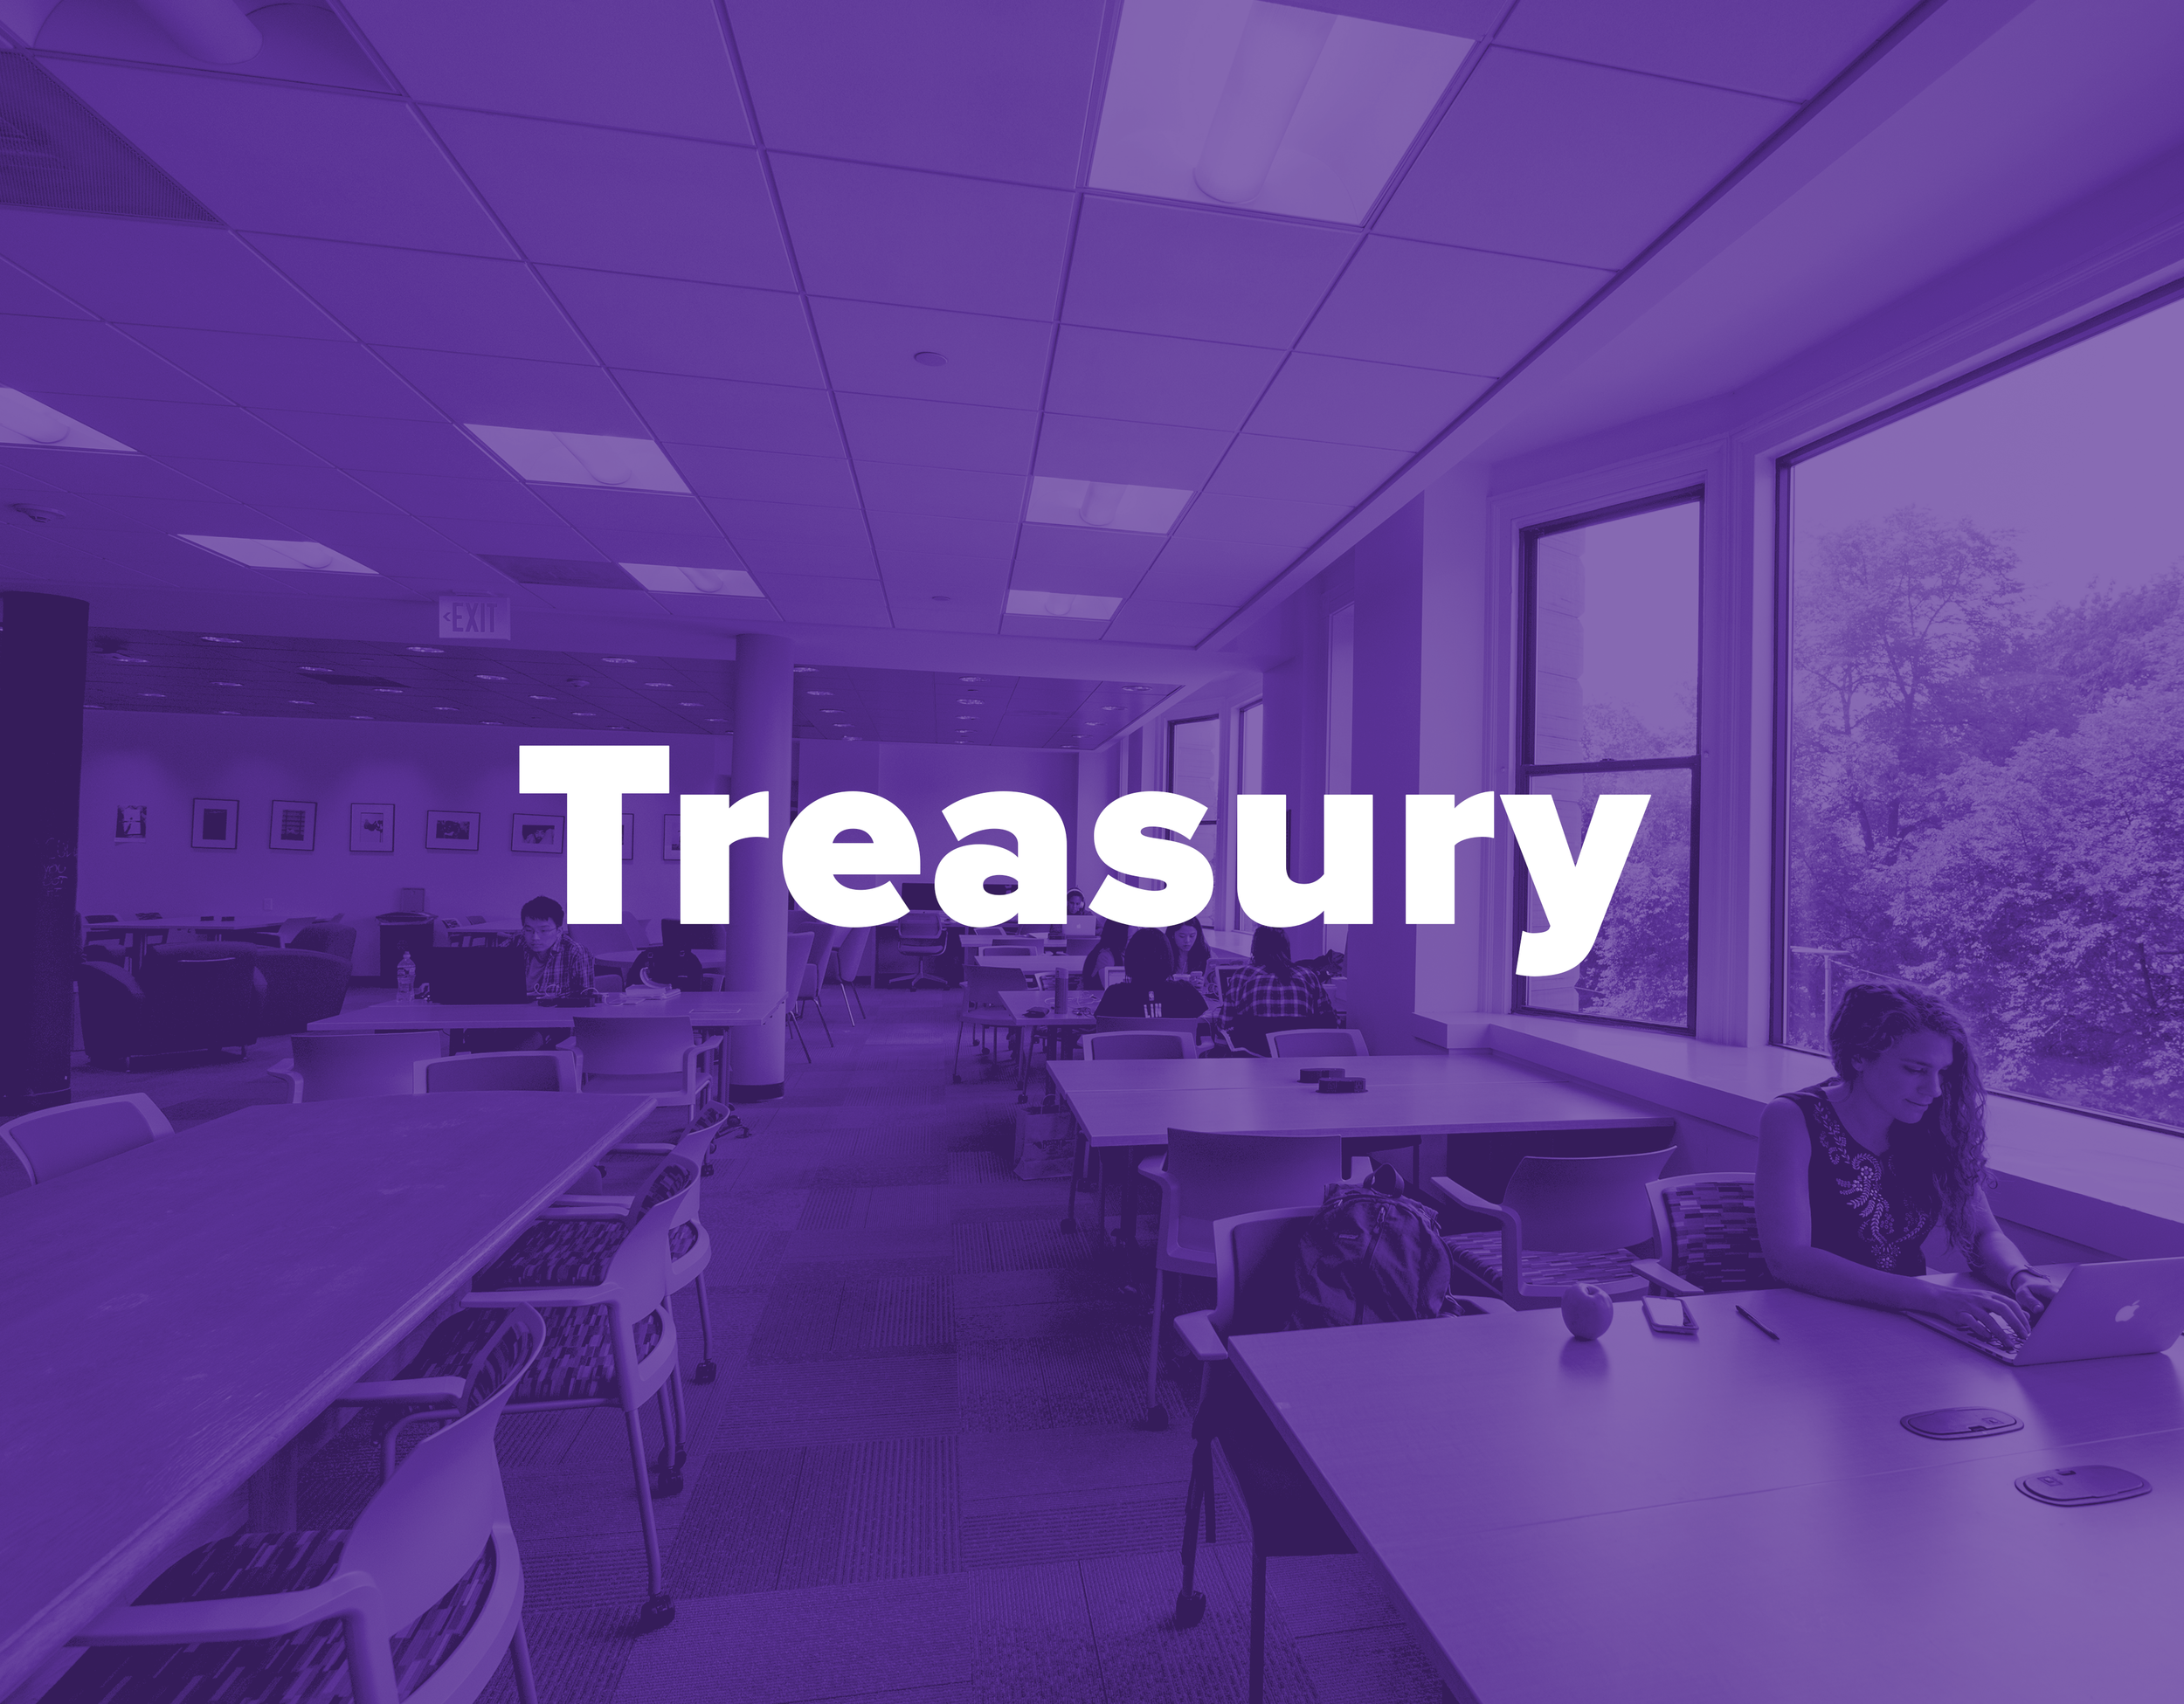 Treasury - Whether it's annual funding or an appeal request, we help SGA recognized organizations receive funding and bring their projects to life.